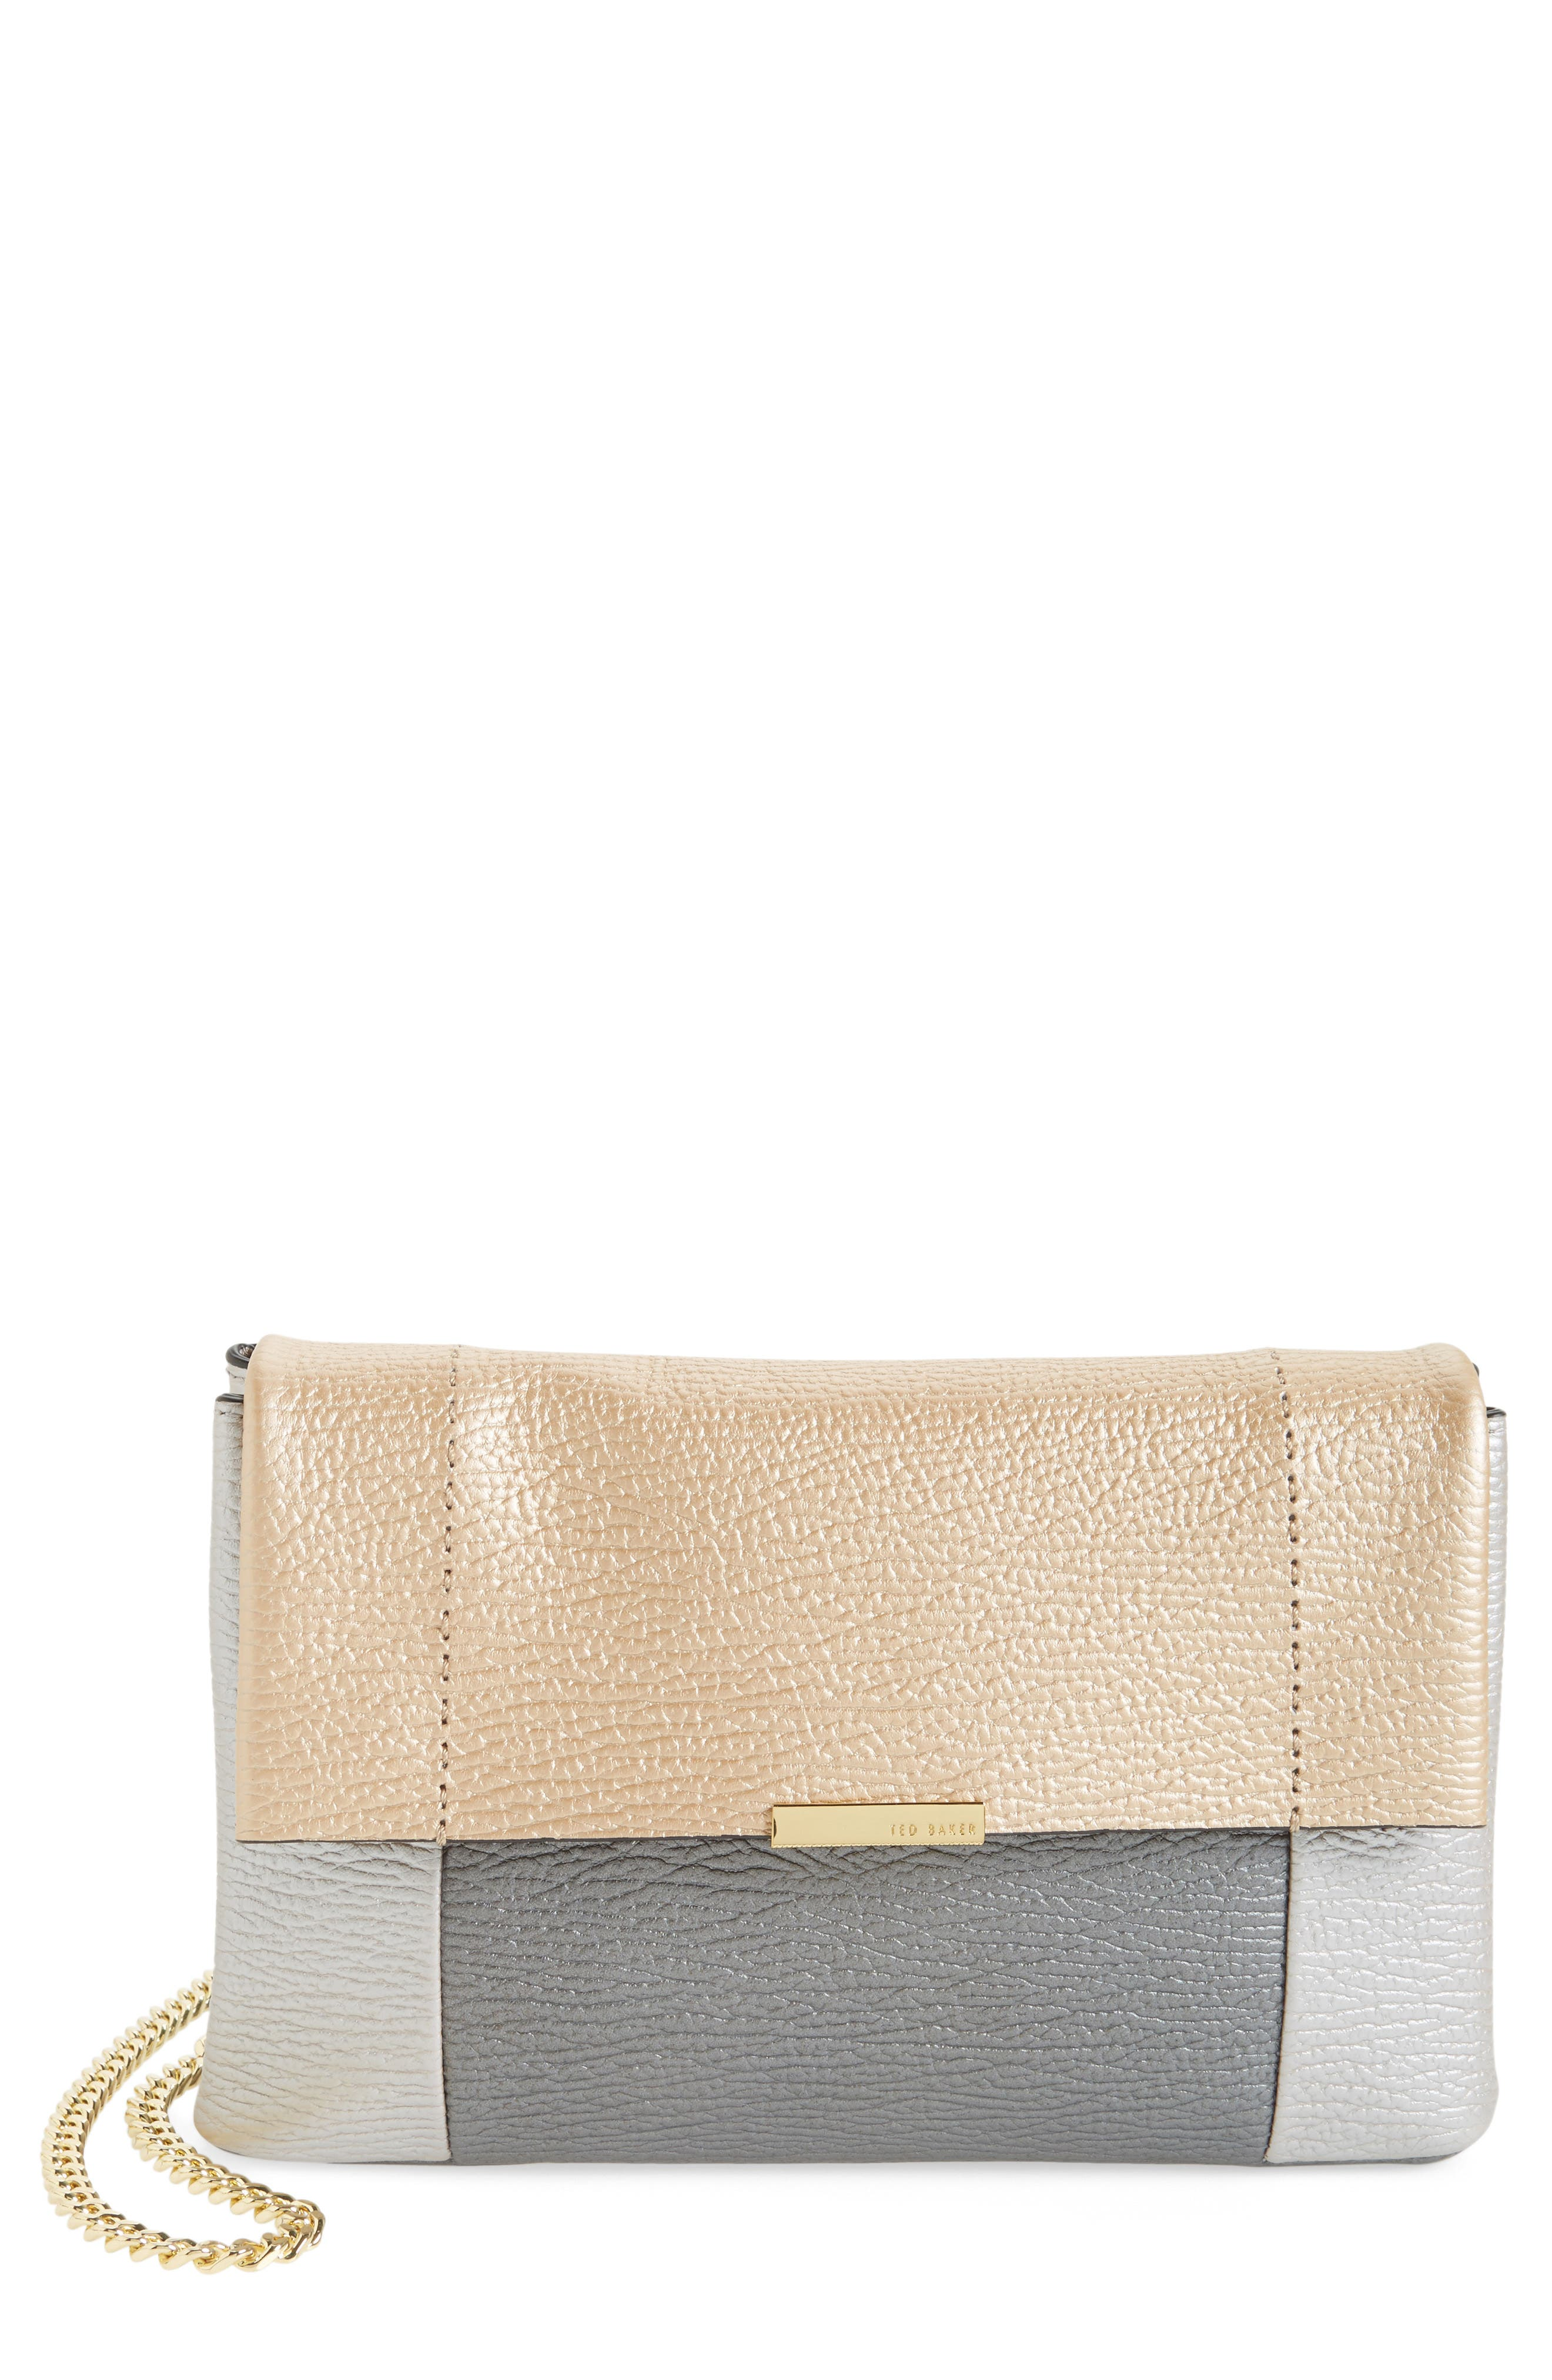 Main Image - Ted Baker London 'Parson' Pebbled Leather Crossbody Bag